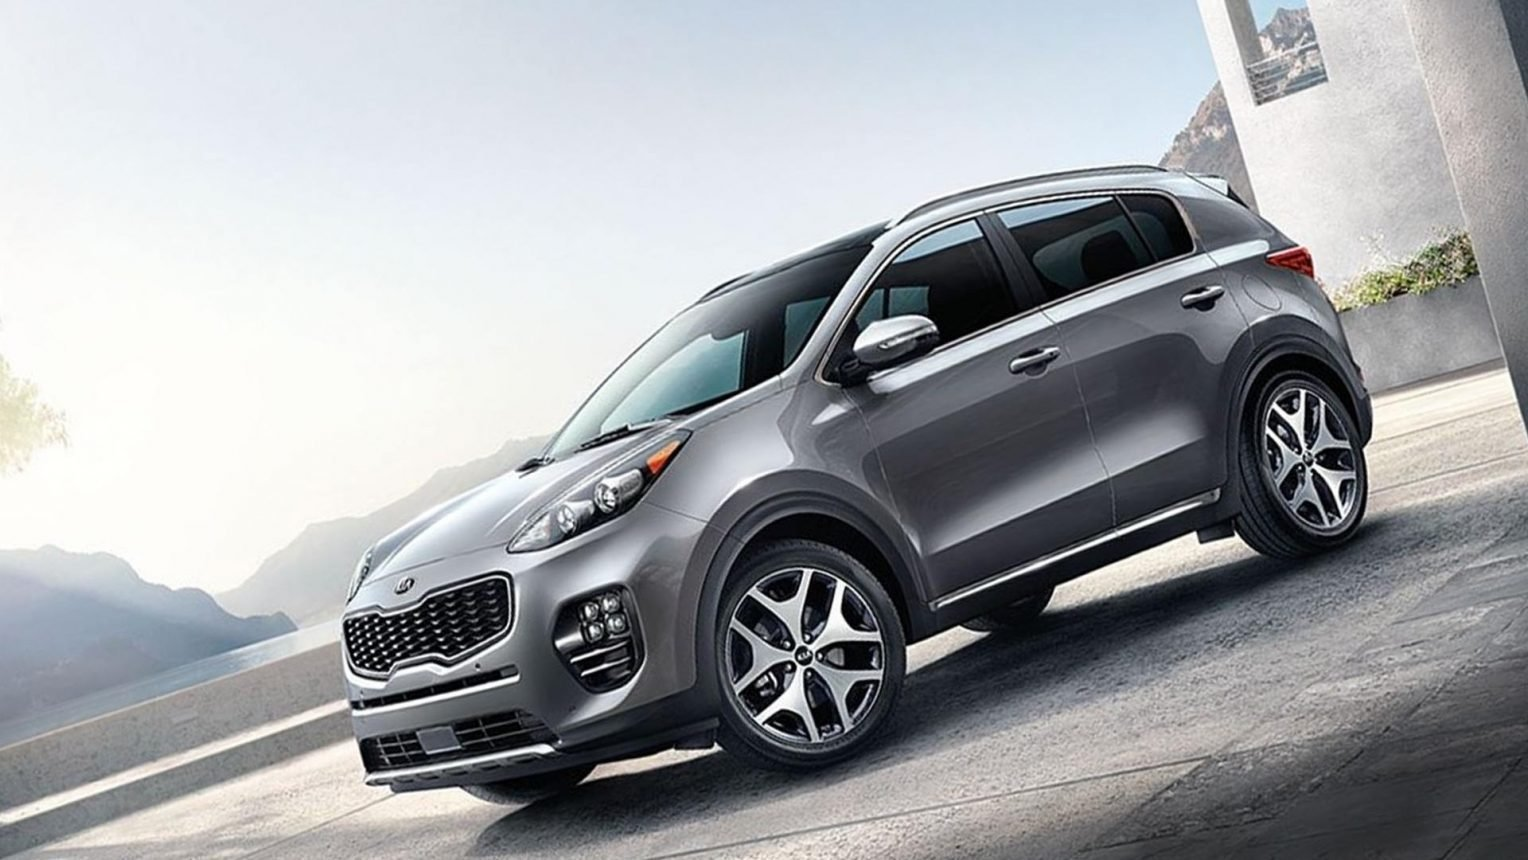 New 2019 Kia Sportage Engine Hd Photo New Autocar Release On This Month